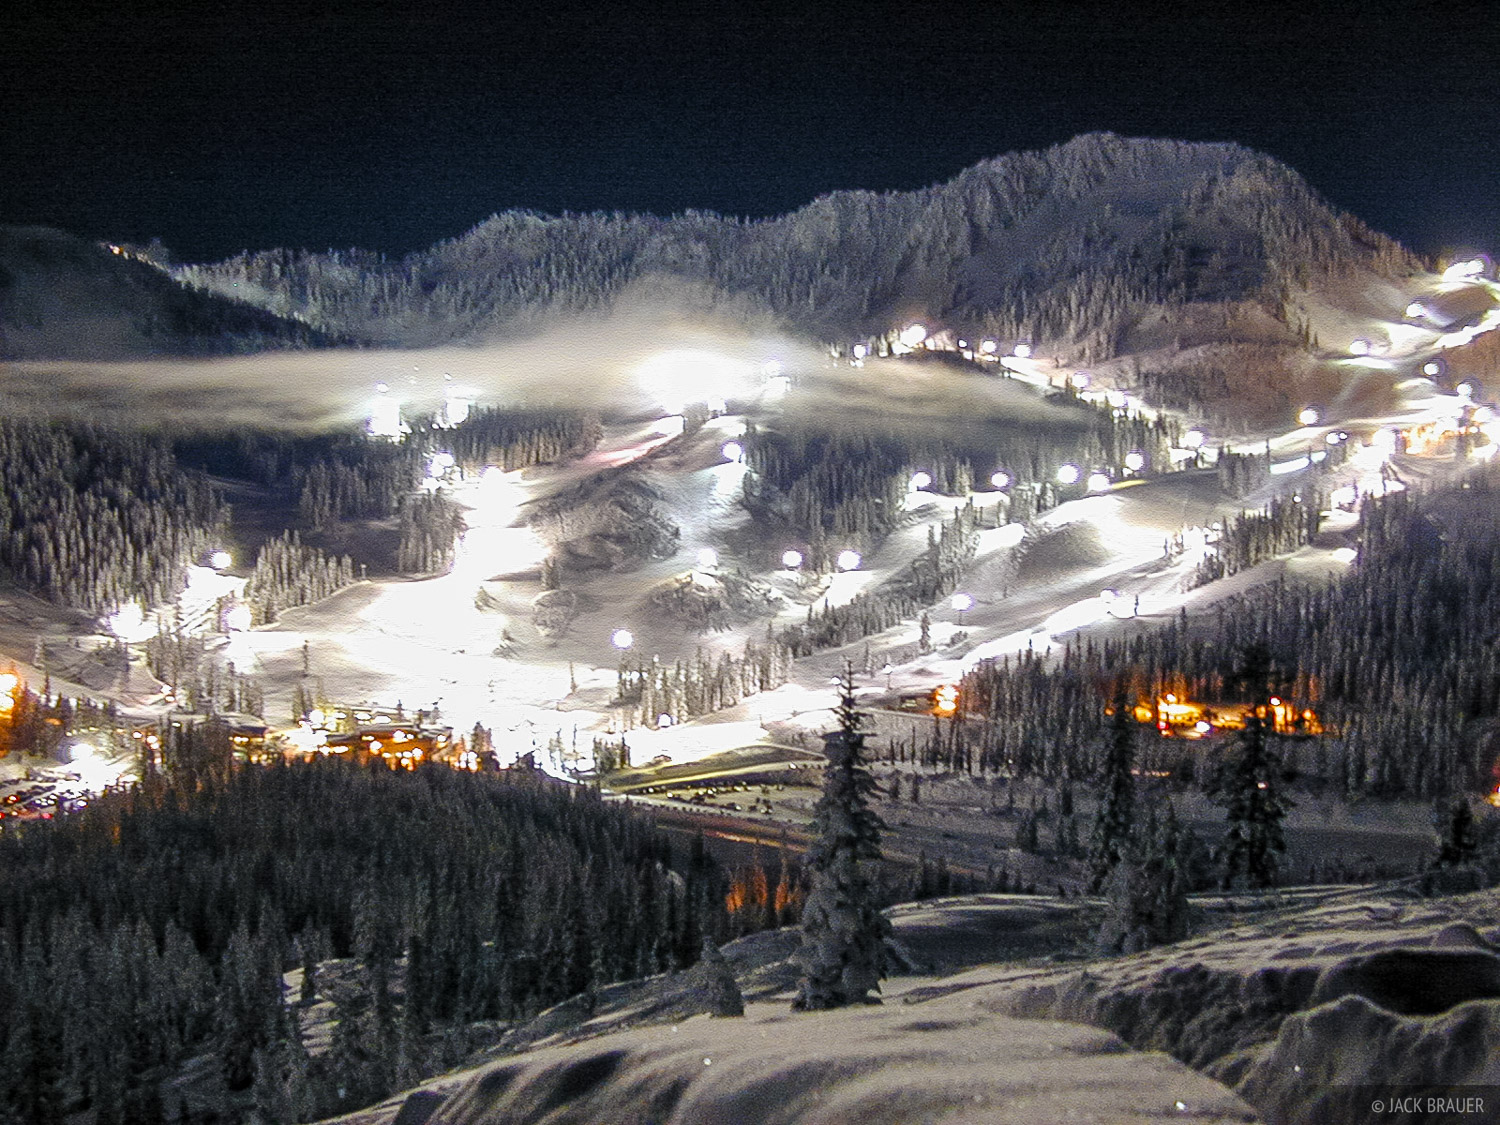 the night skiing lights at Stevens Pass on a fullmoon night - January